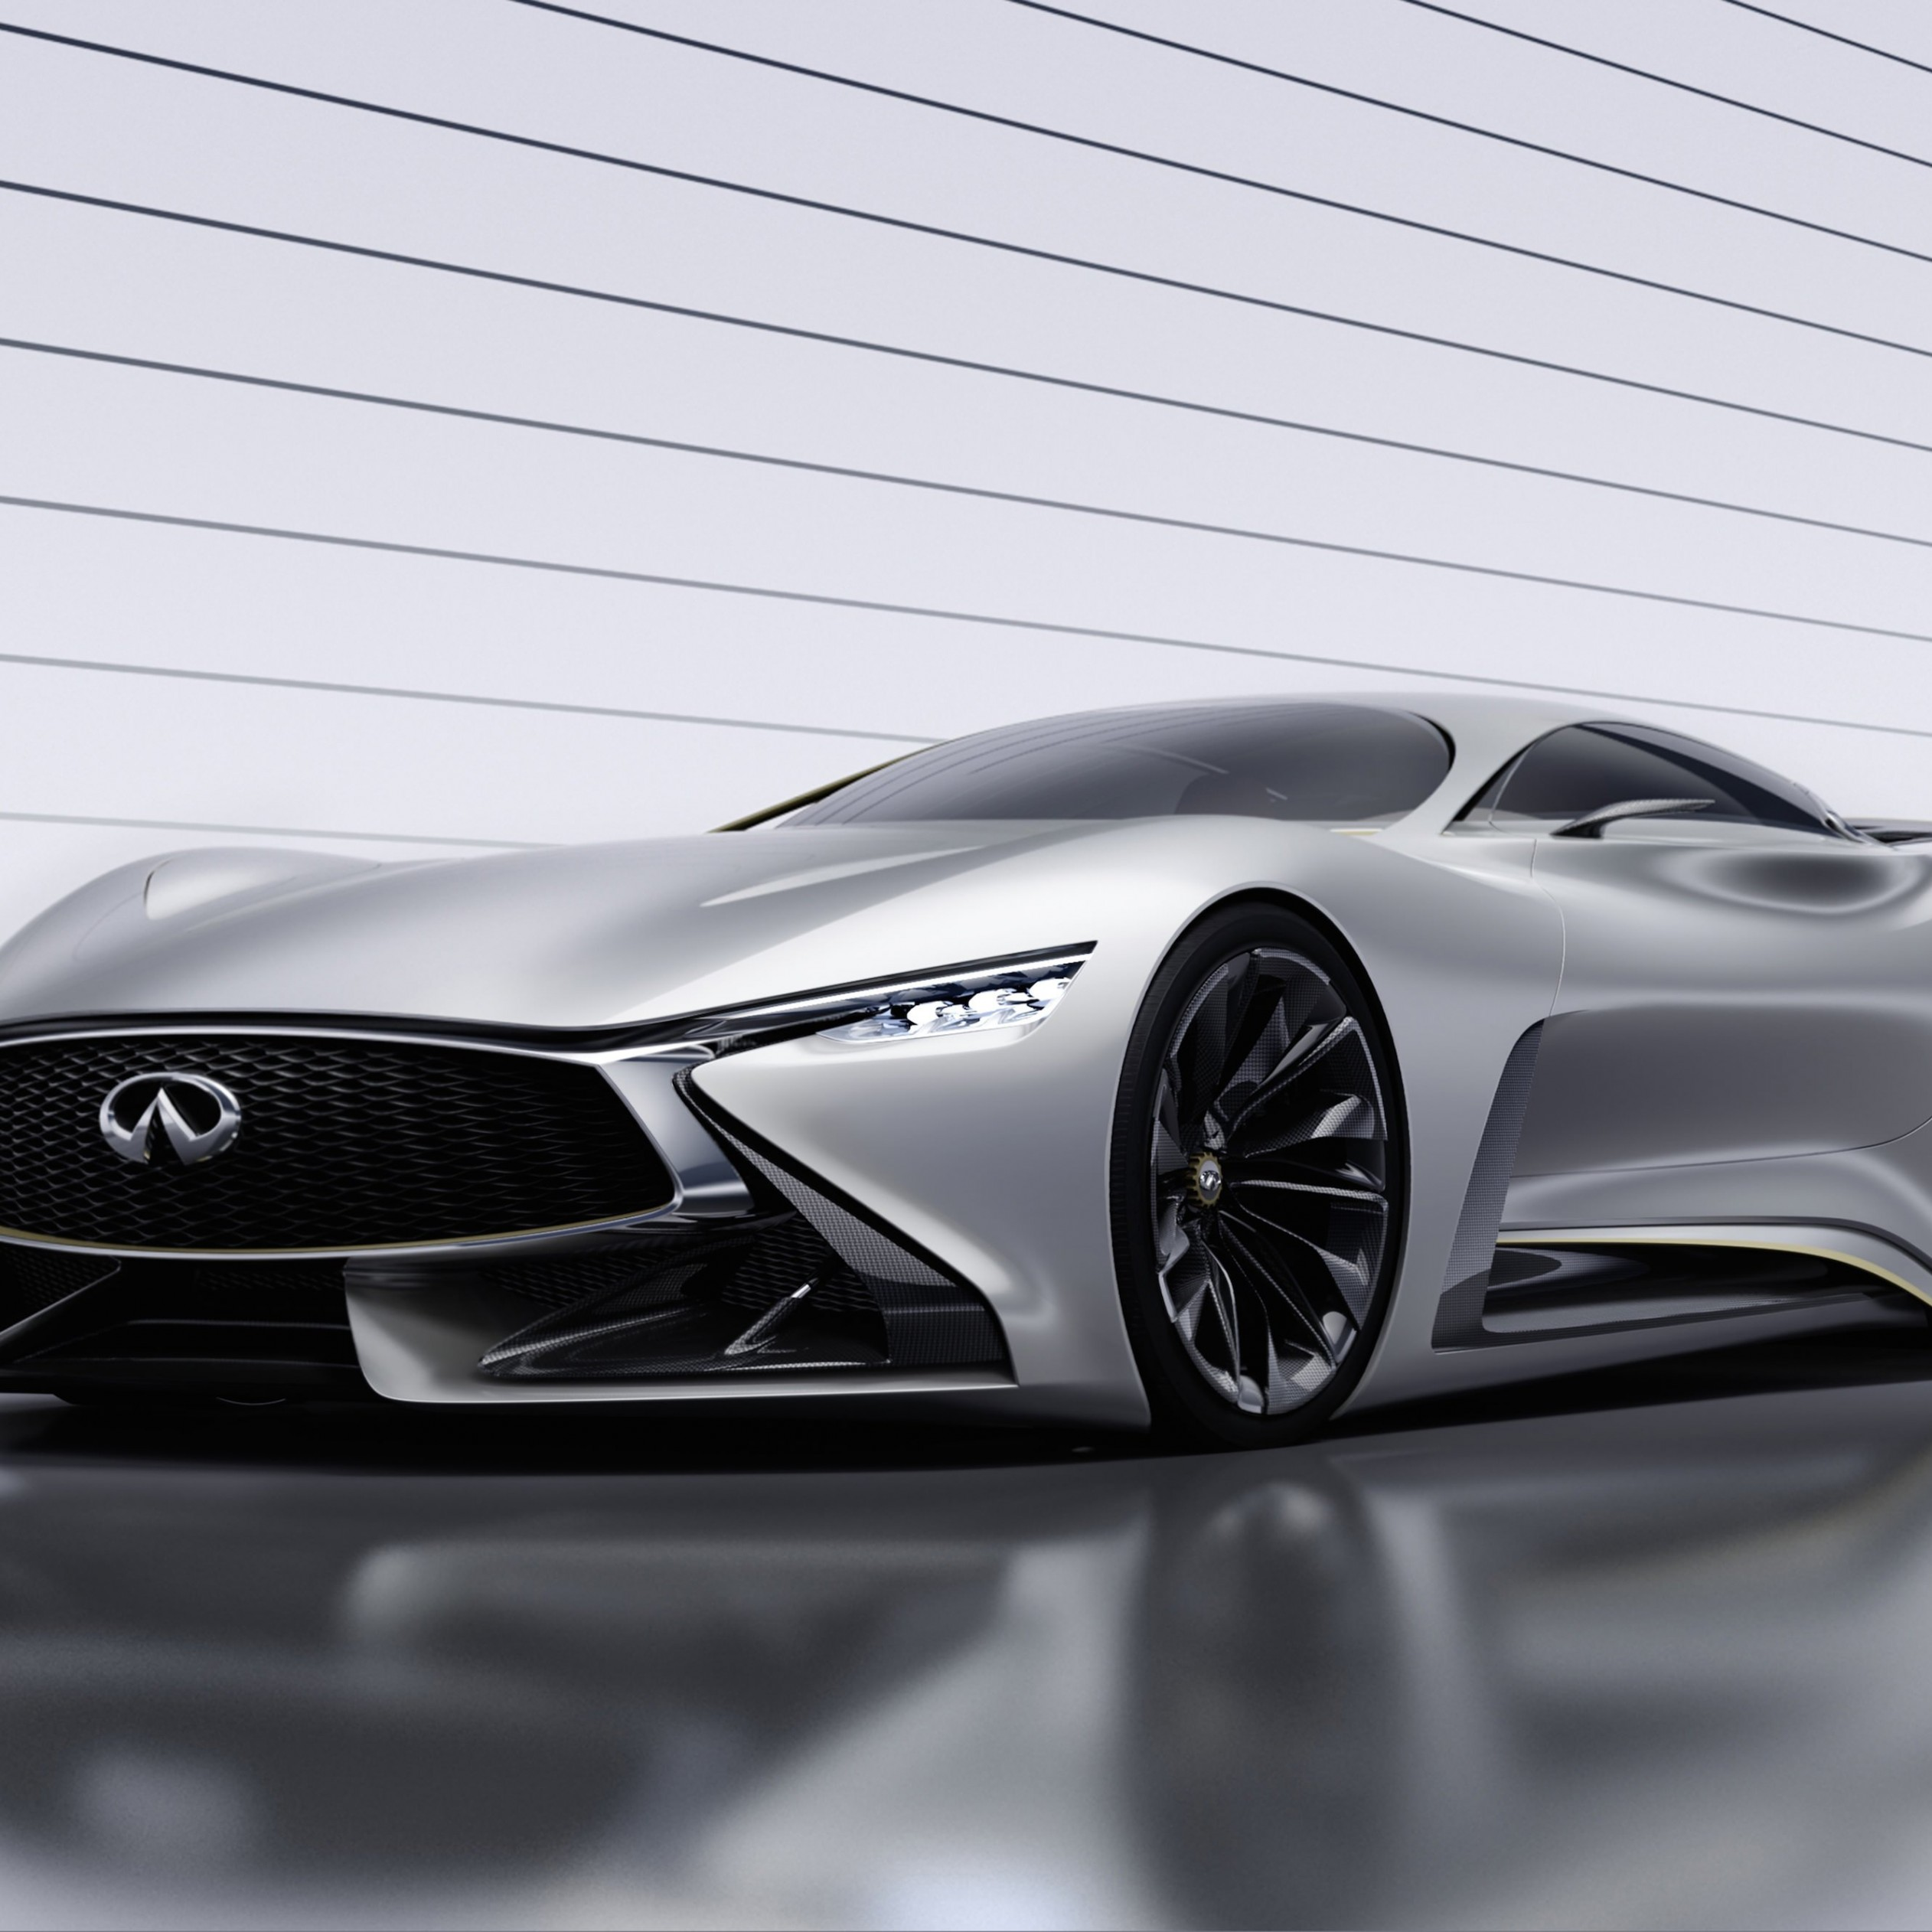 Infiniti Vision GT Concept Wallpaper for Apple iPad 4